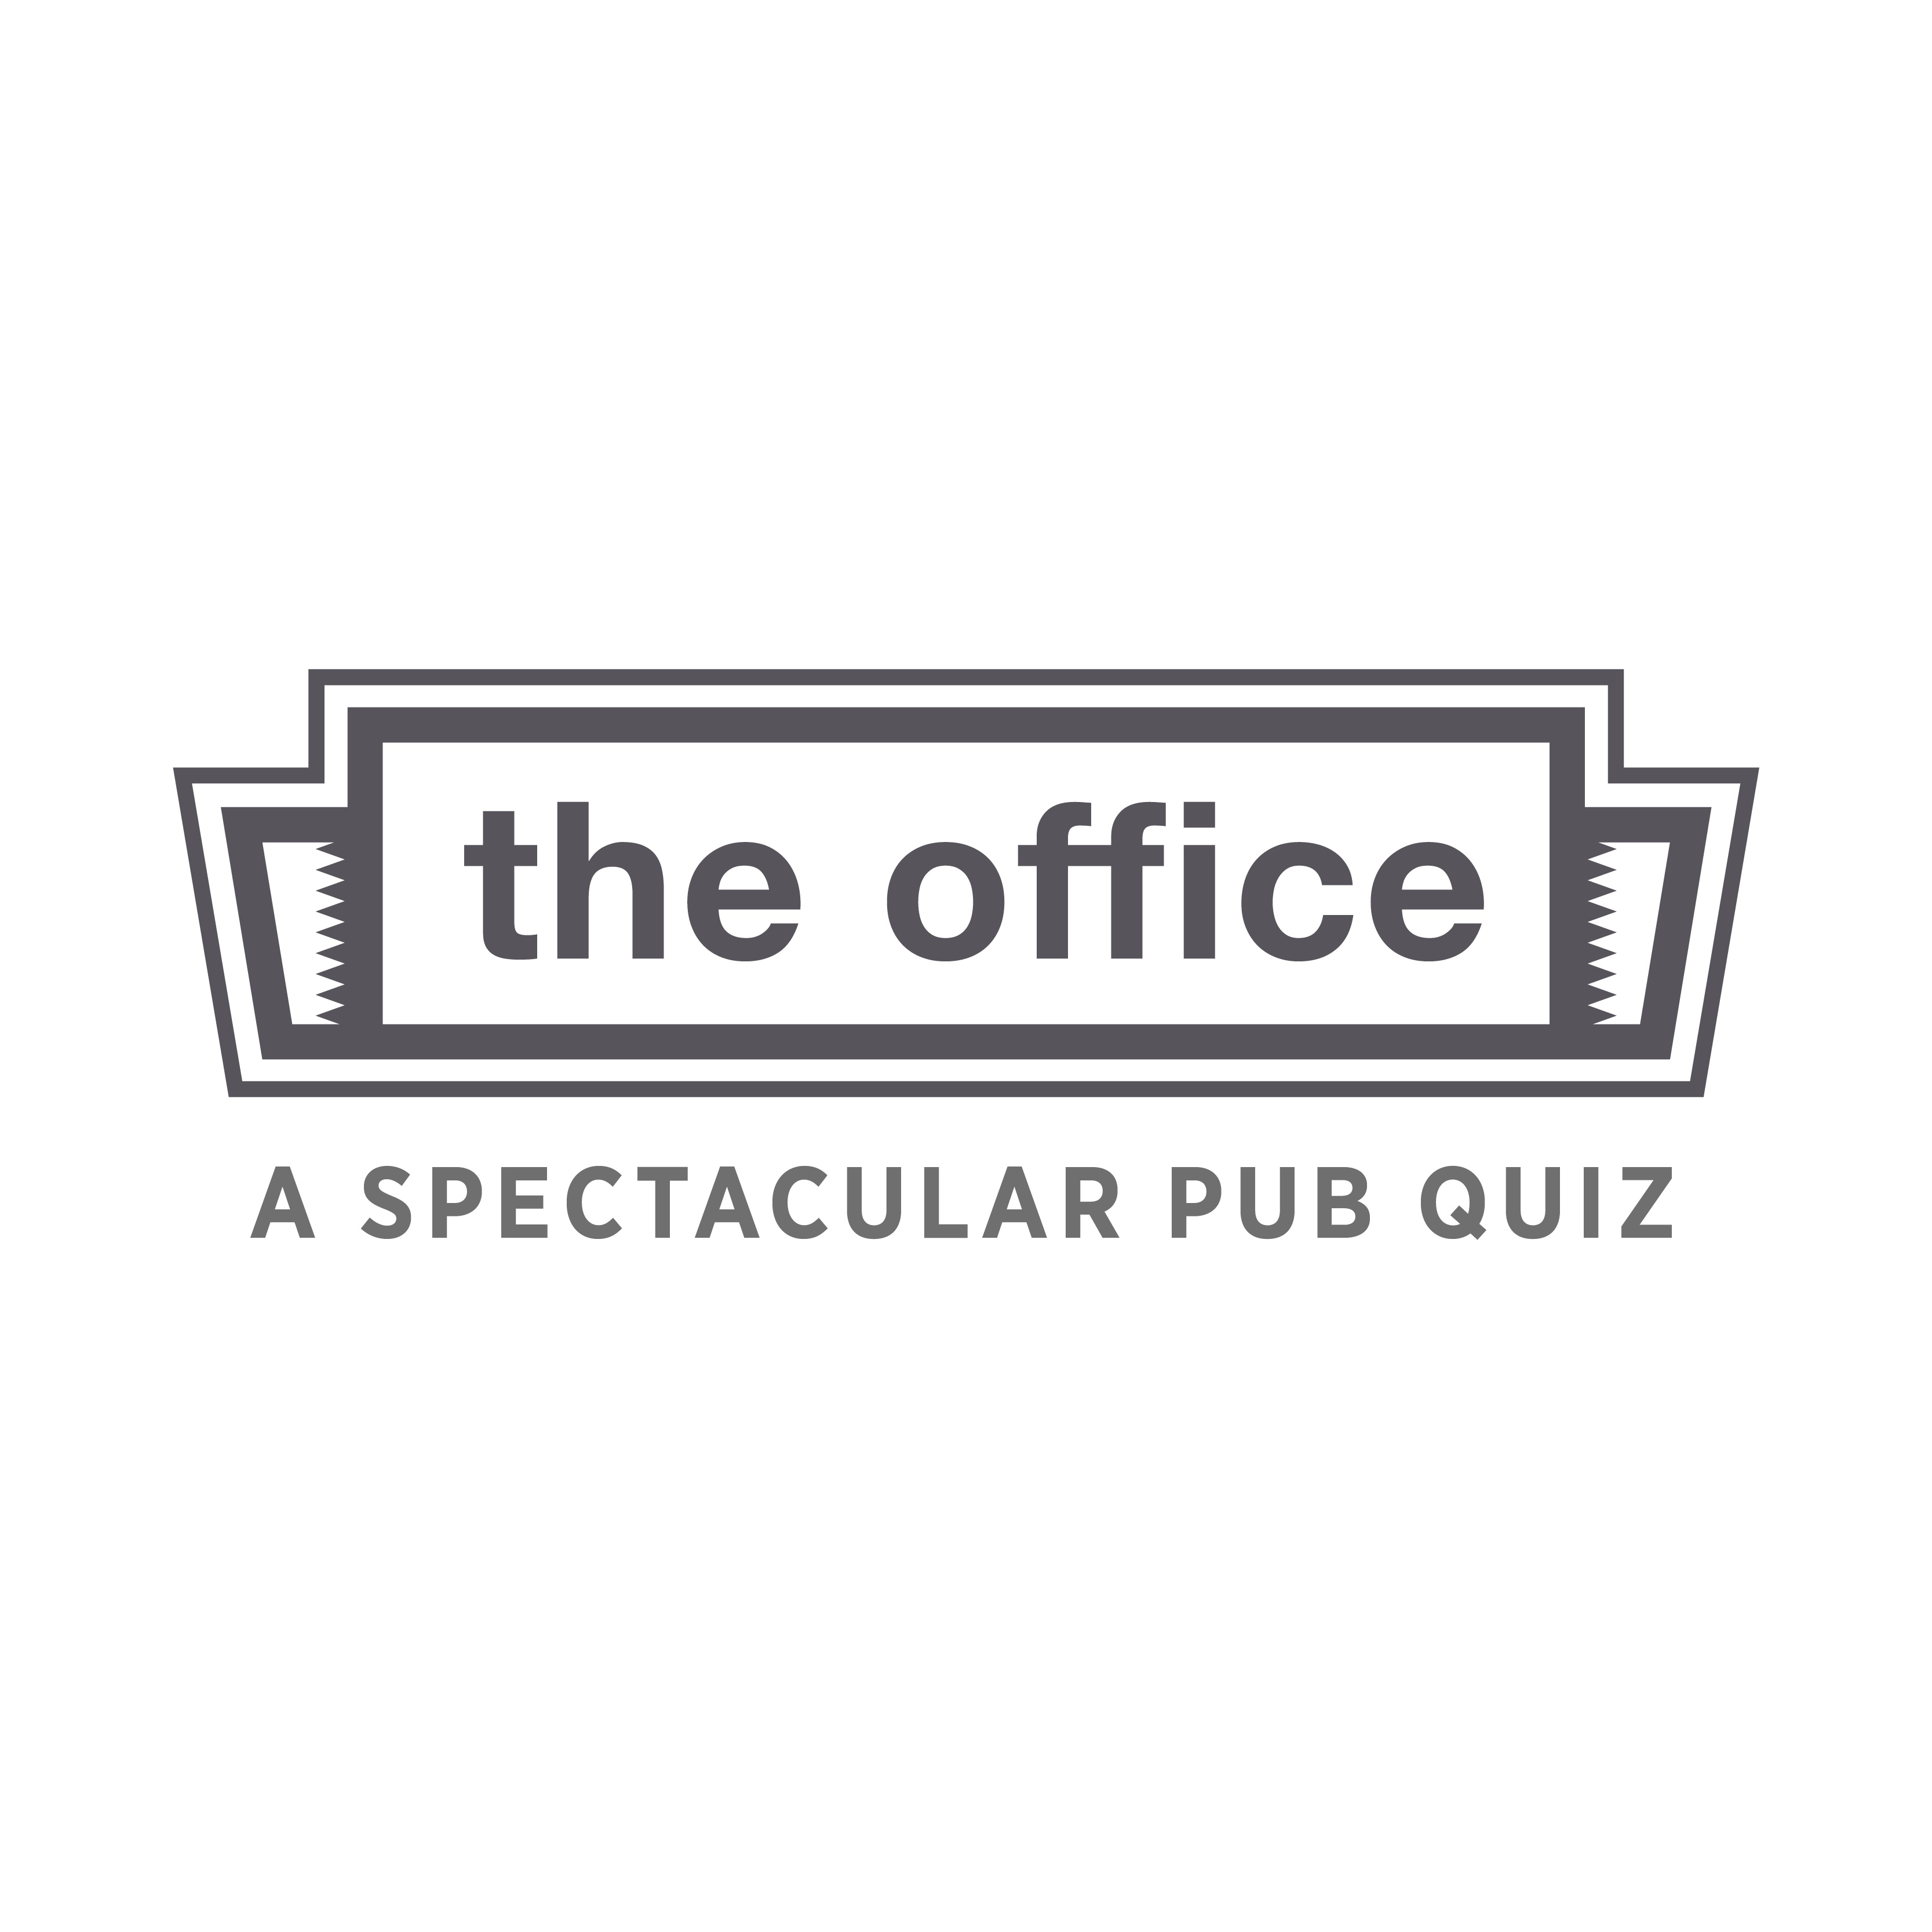 You don't get prizes for guessing 1 0: The Office Pub Quiz